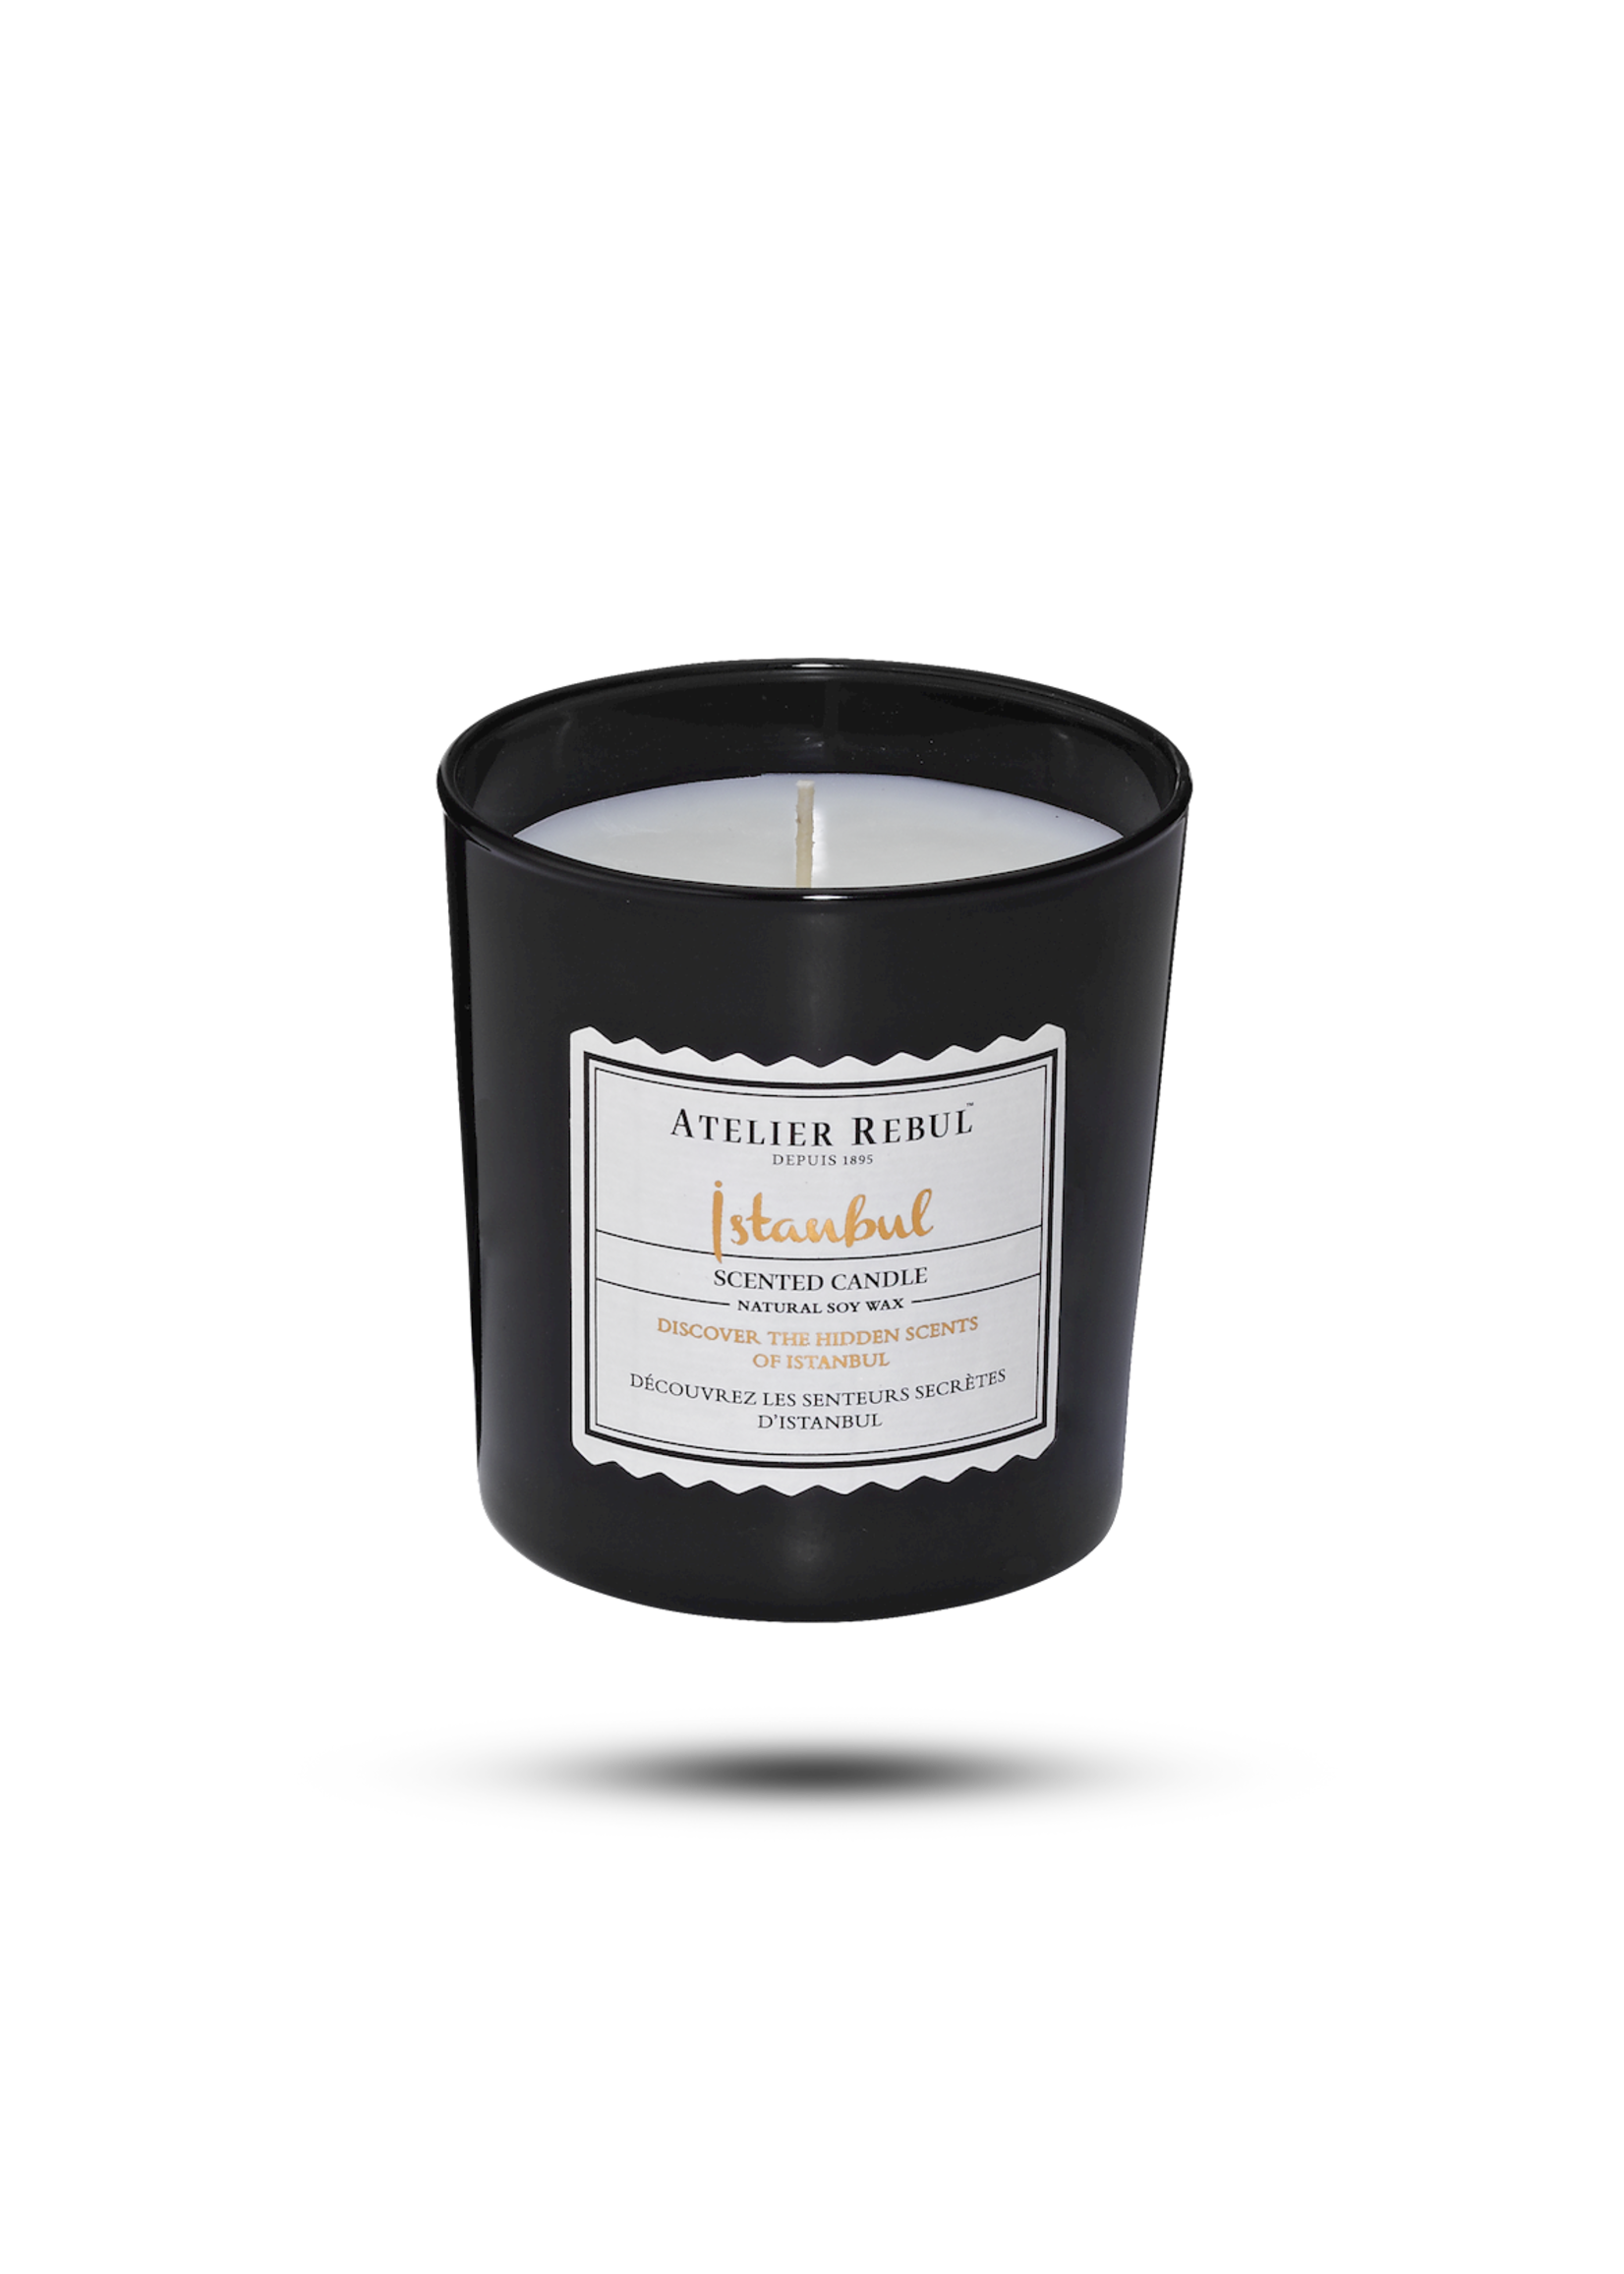 Atelier Rebul Istanbul Scented Candle 210gr